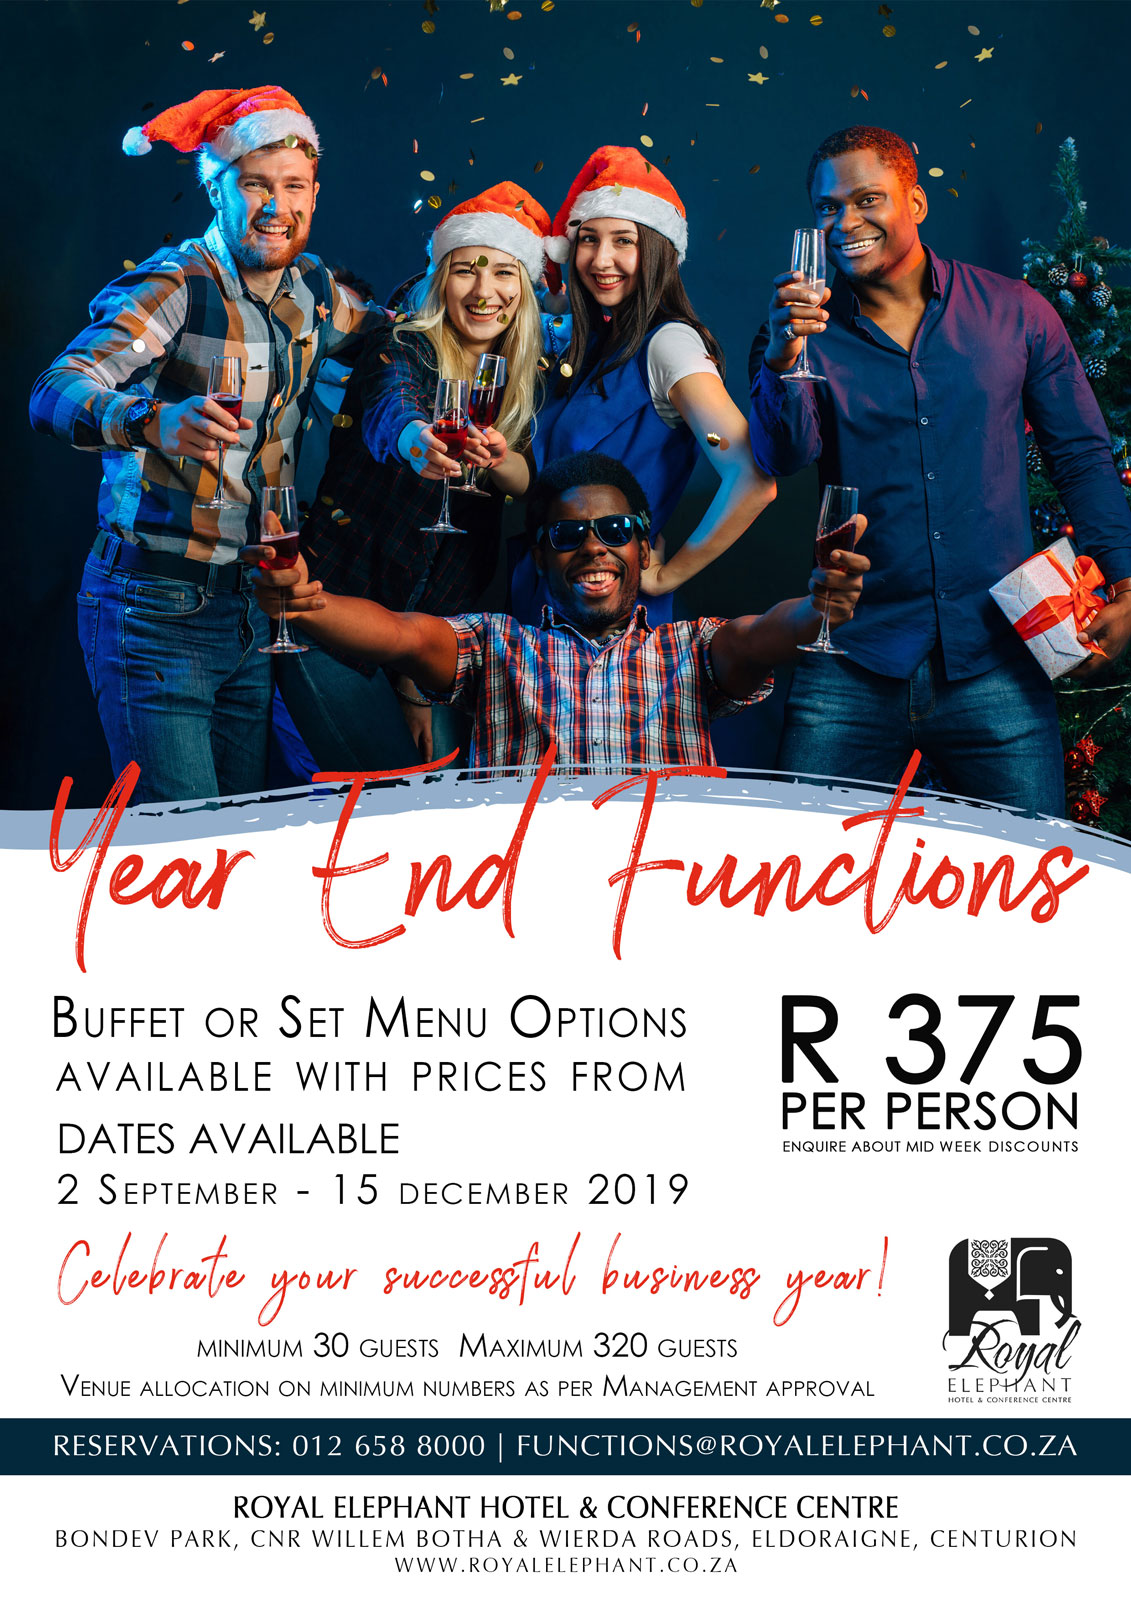 Host your Year-End Function at Royal Elephant